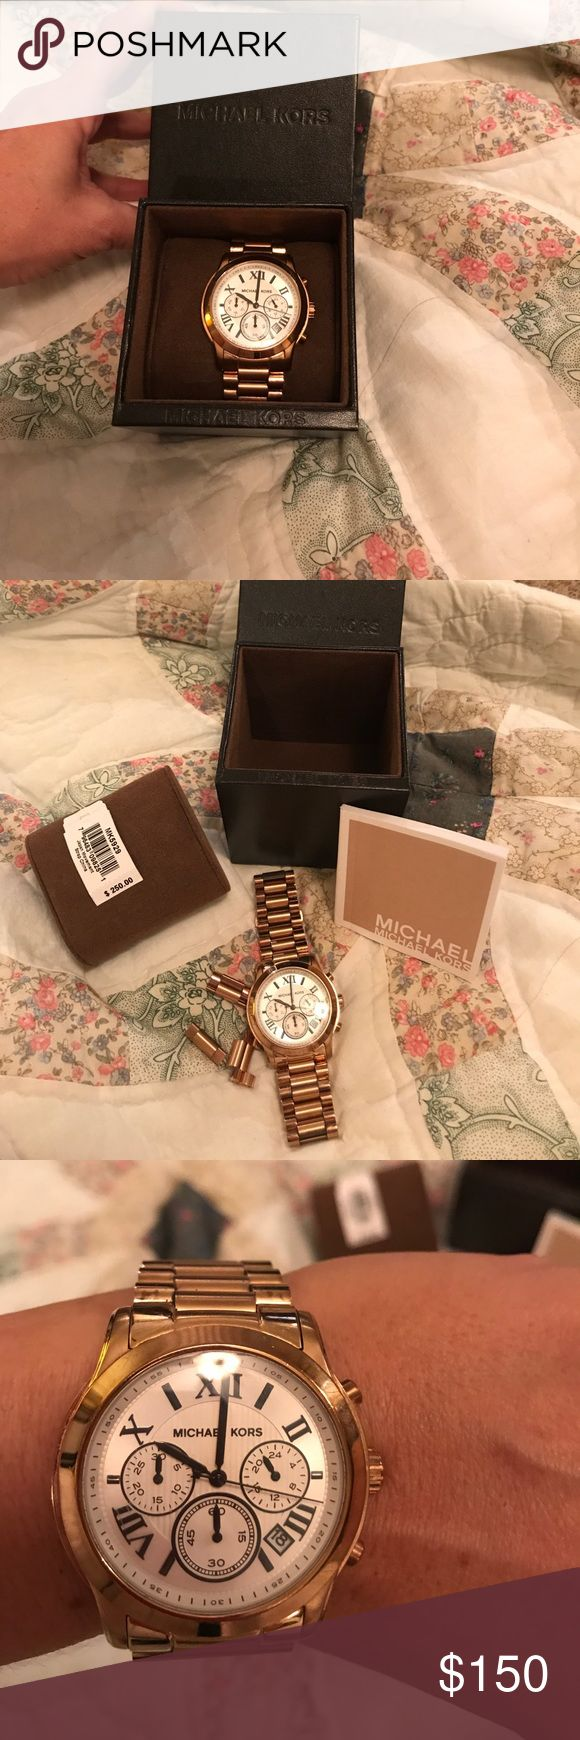 Rose Gold Michael Kors watch Beautiful rose gold Michael Kors watch. Has white face with Roman numerals and features date and military time. Comes with box booklet and extra links. This does need a new battery. KORS Michael Kors Accessories Watches